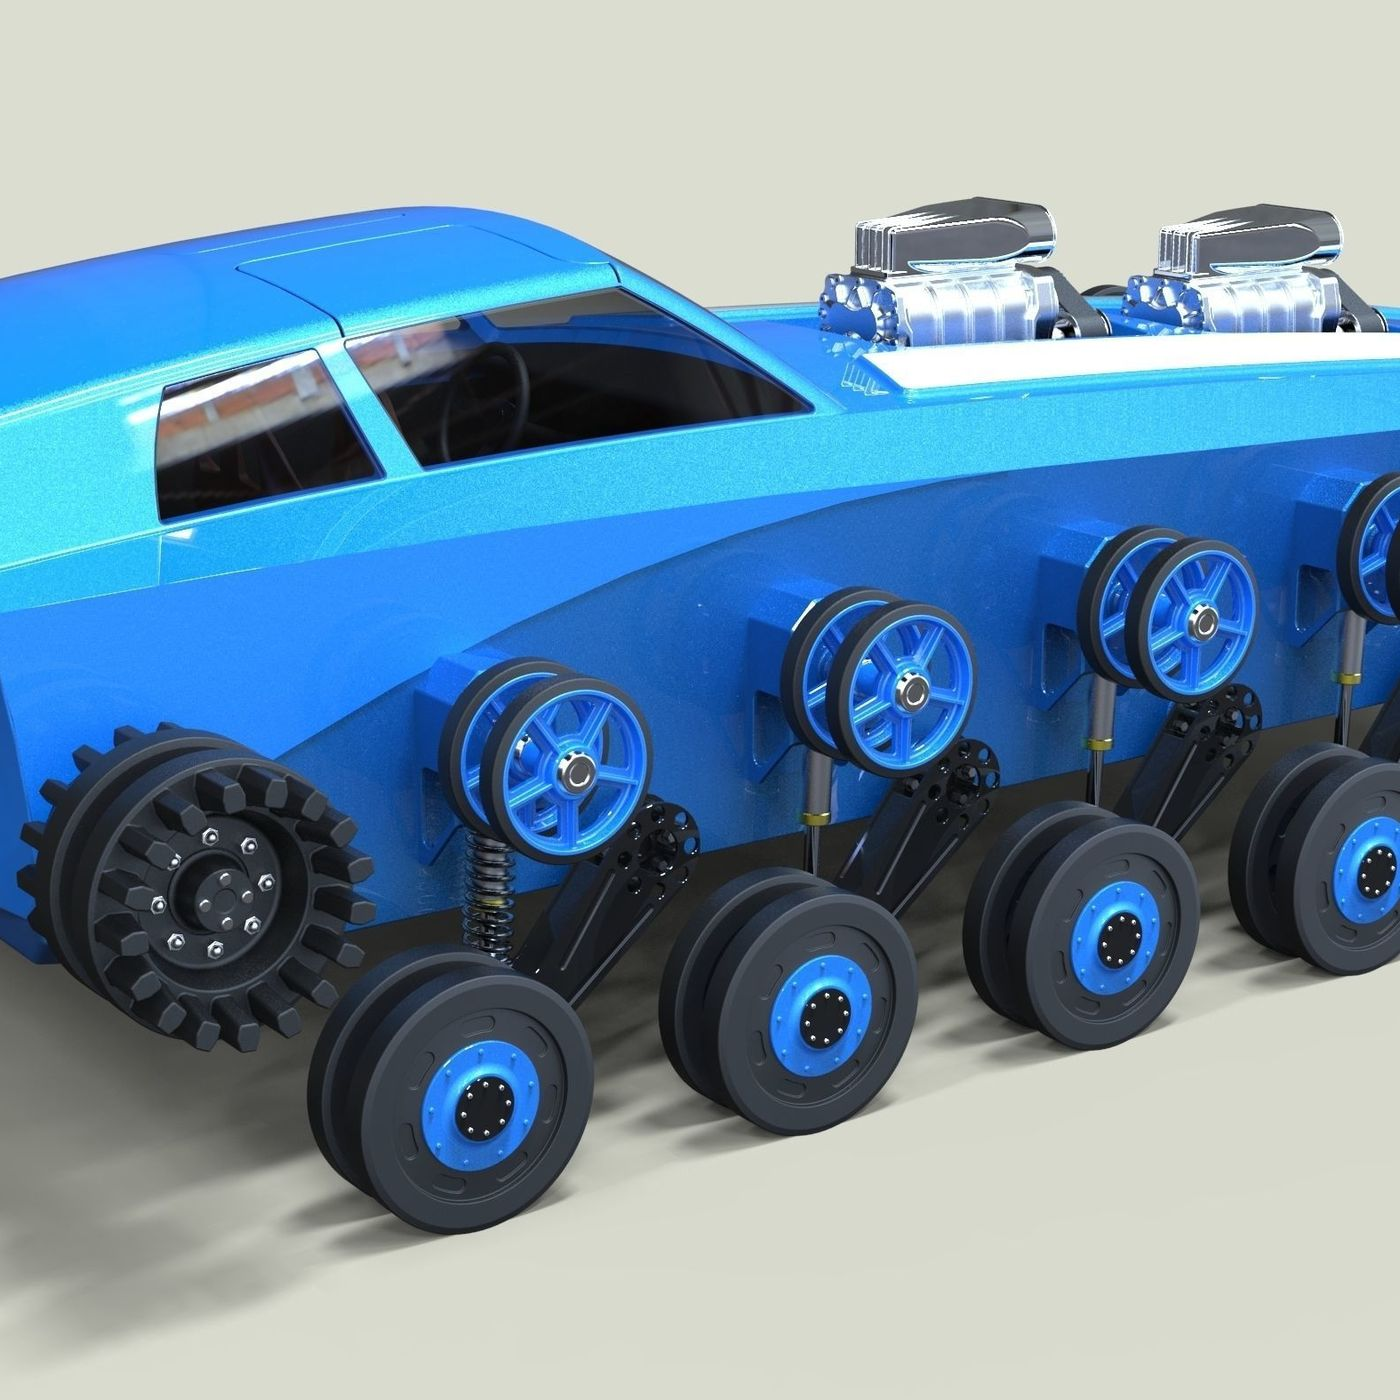 Muscle car on tracks